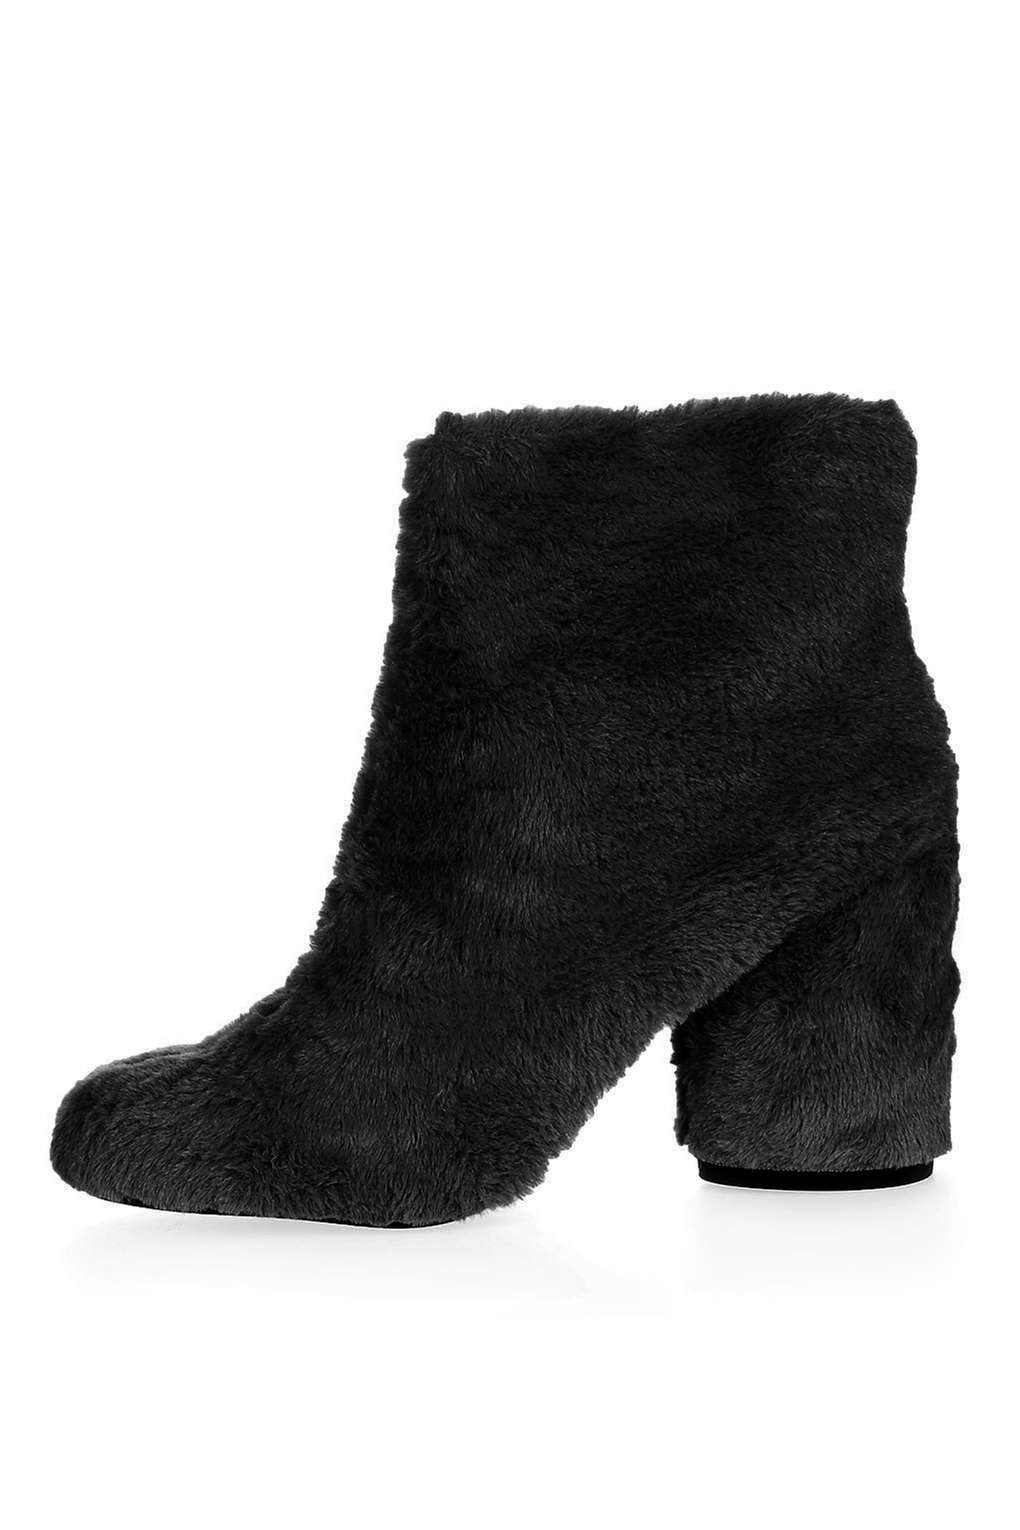 HAIRY-HARRY Fur Ankle Boots £69.00 Click to visit Topshop